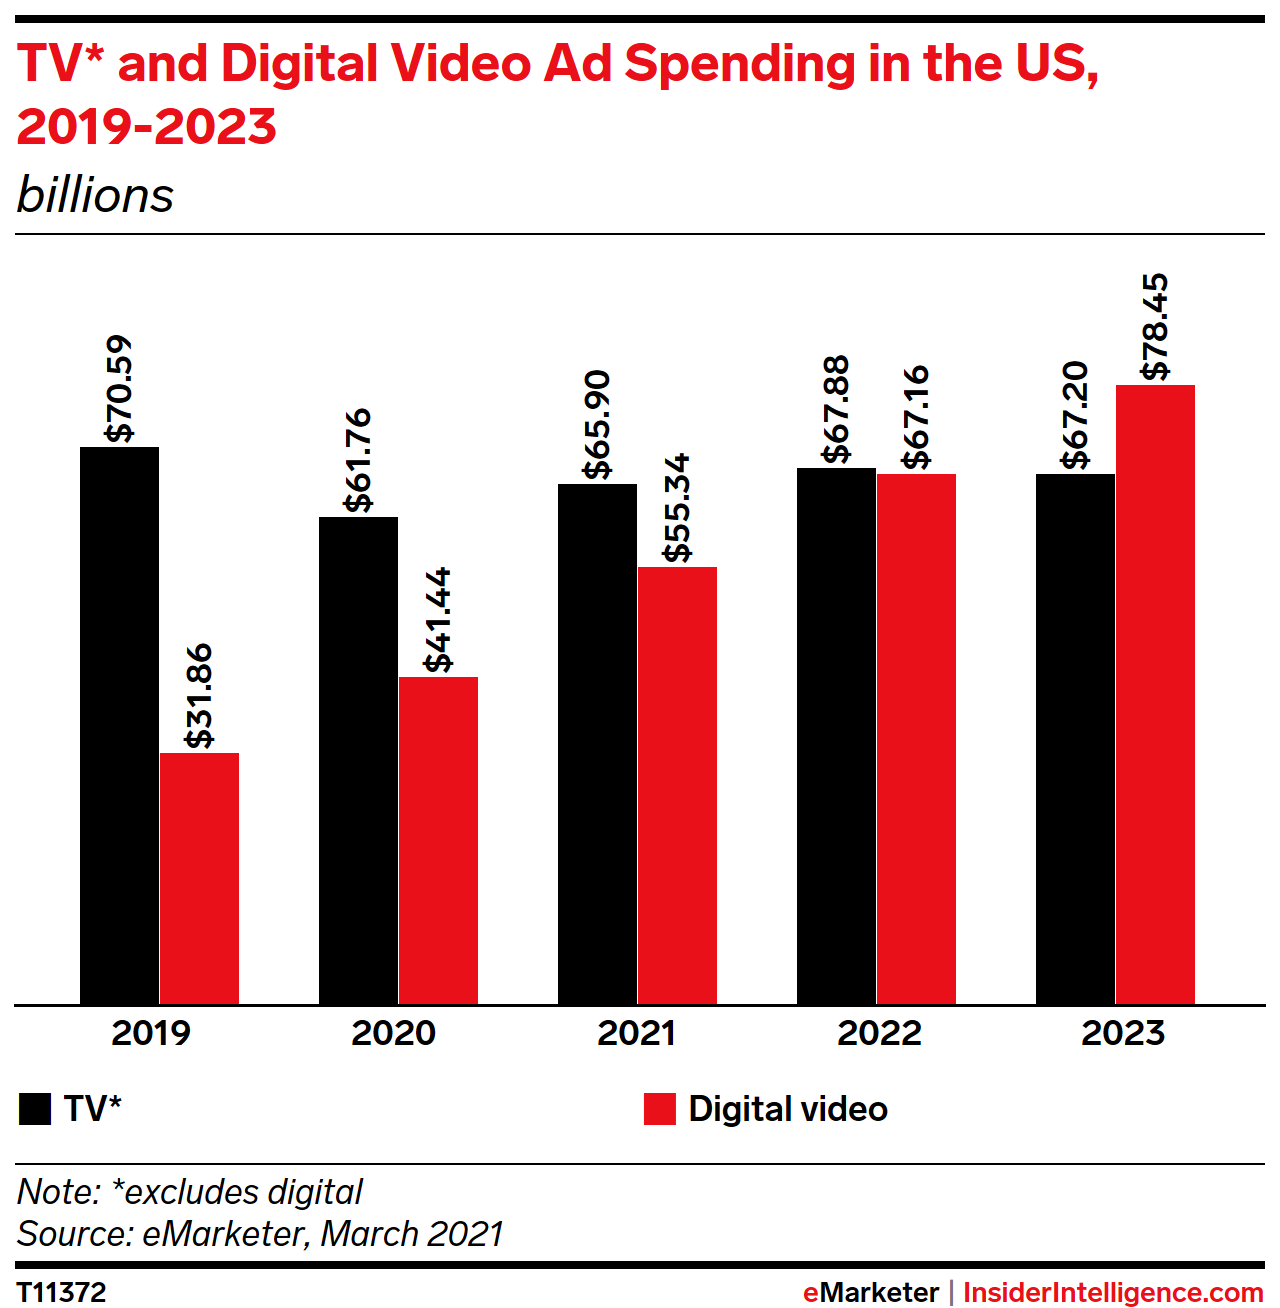 TV* and Digital Video Ad Spending in the US, 2019-2023 (billions)